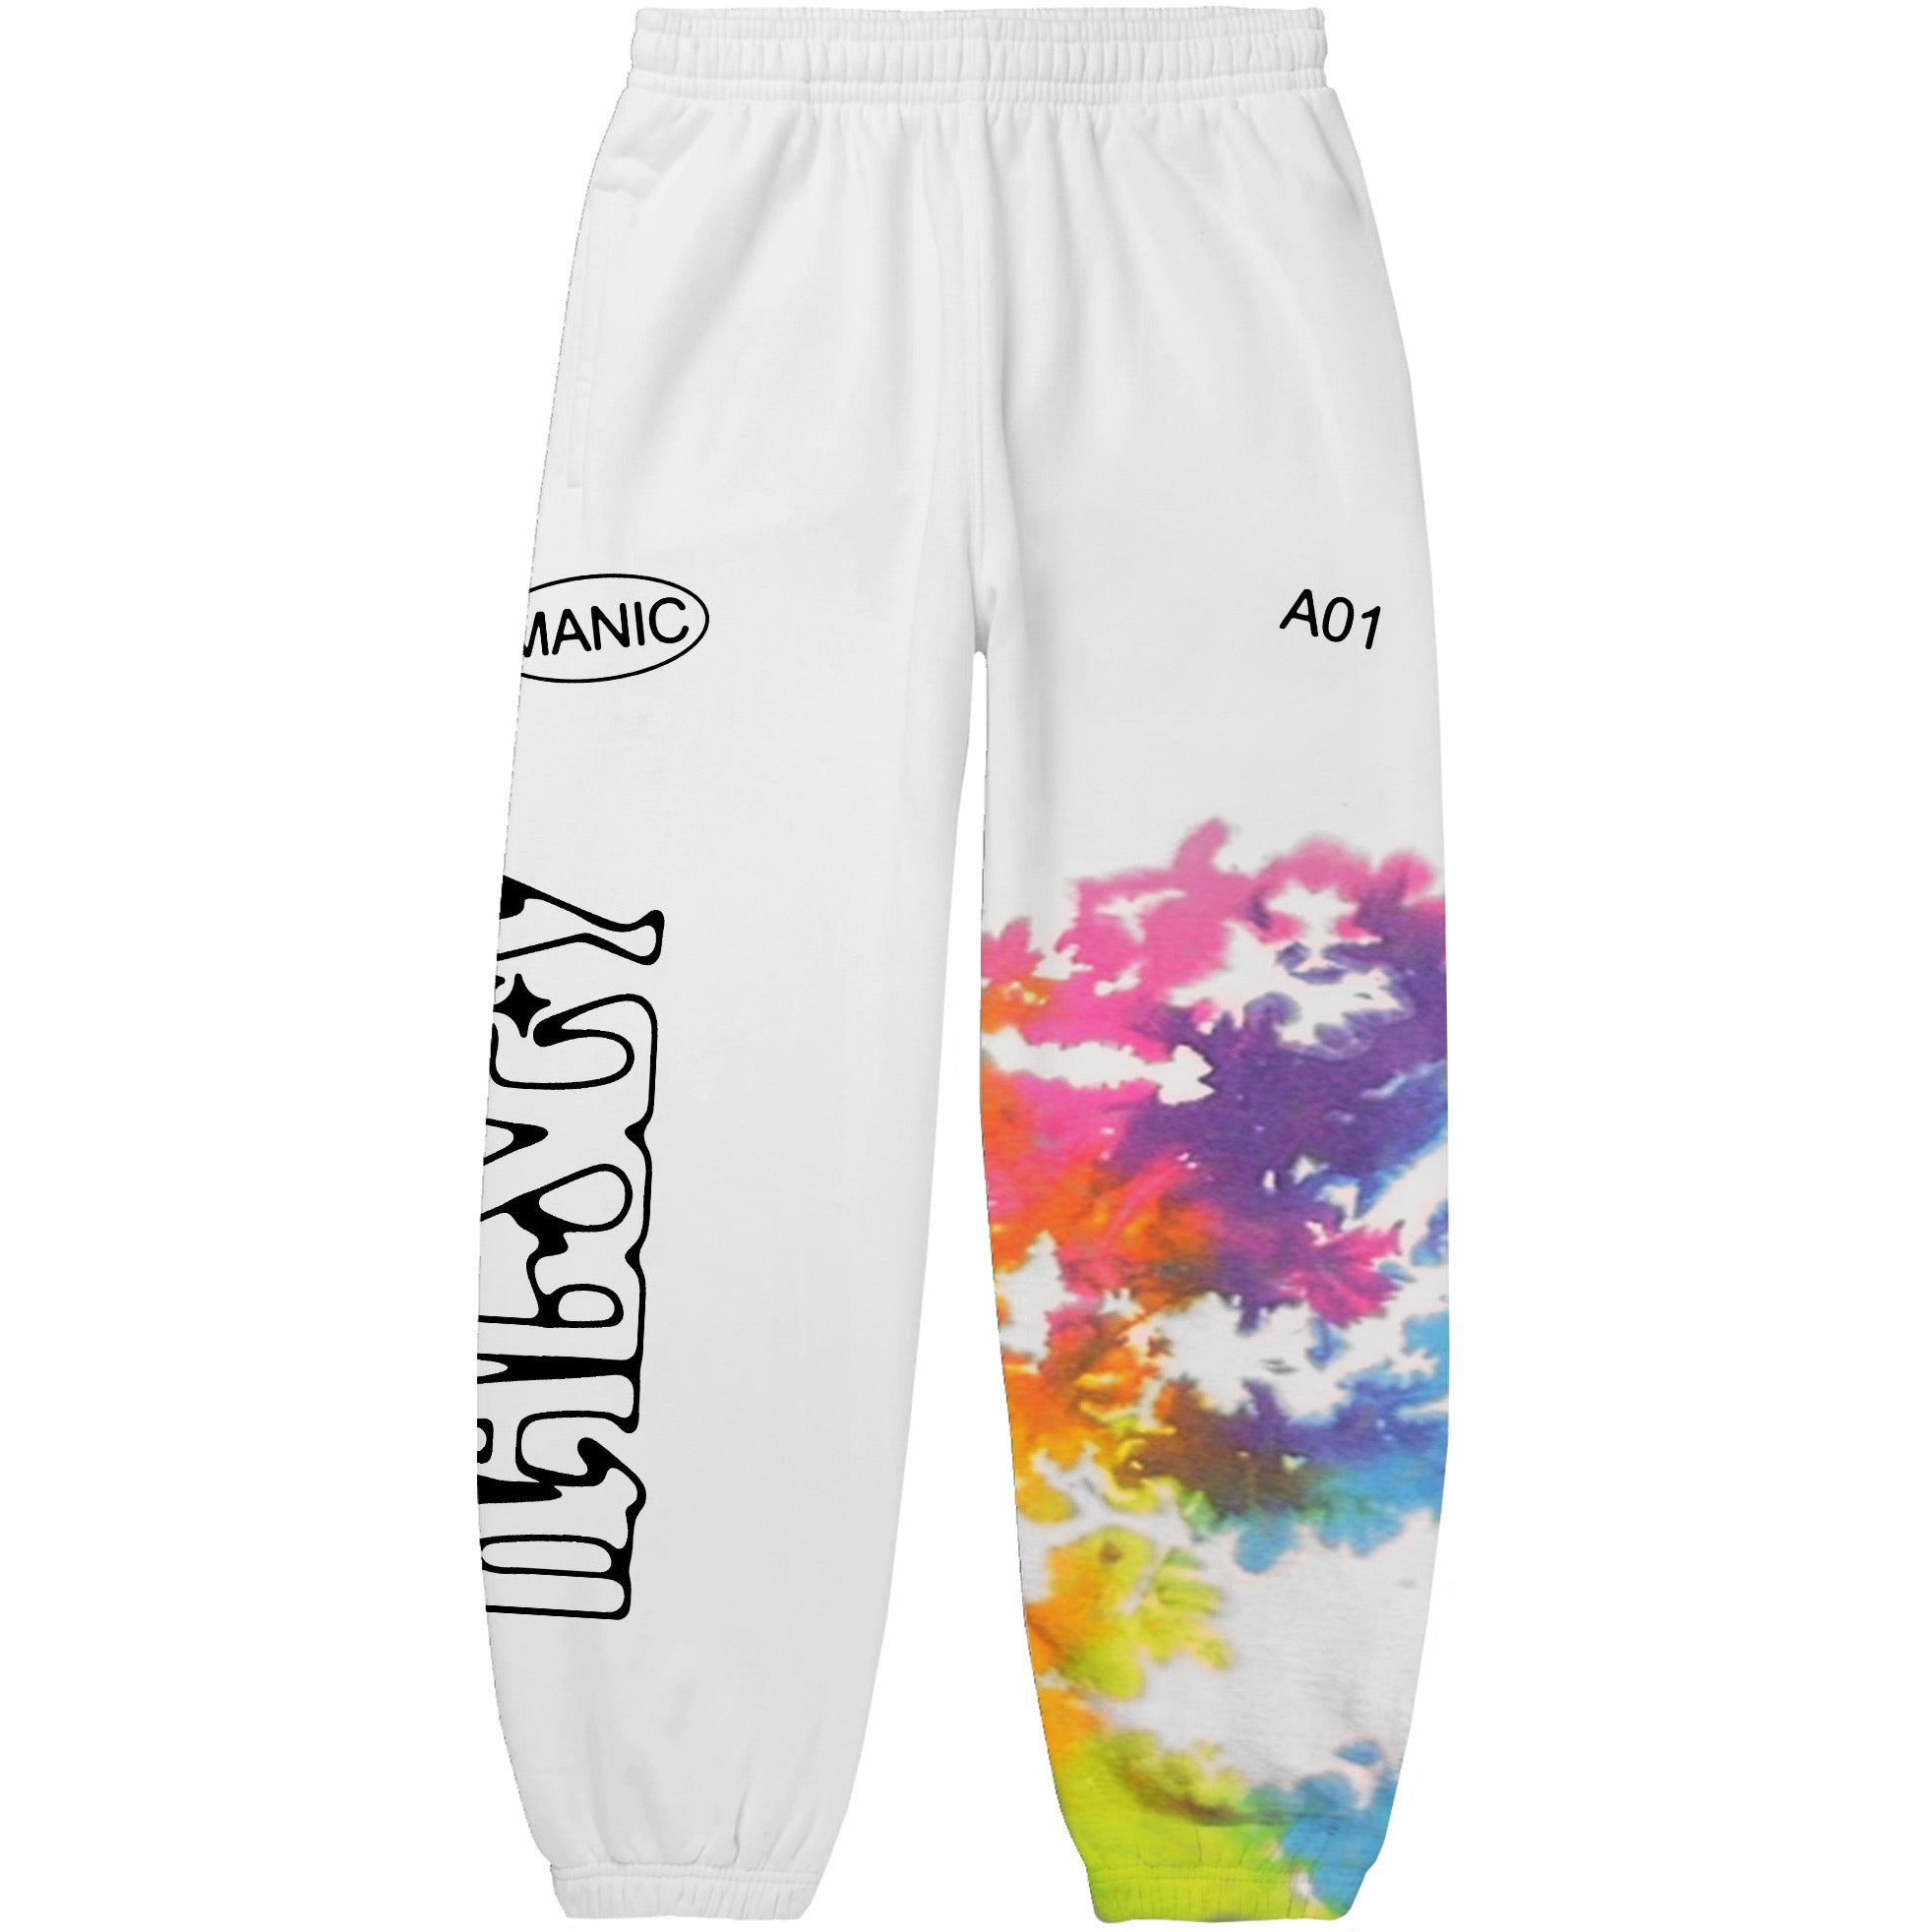 LIMITED EDITION 'MANIC' TIE-DYE SWEATPANTS